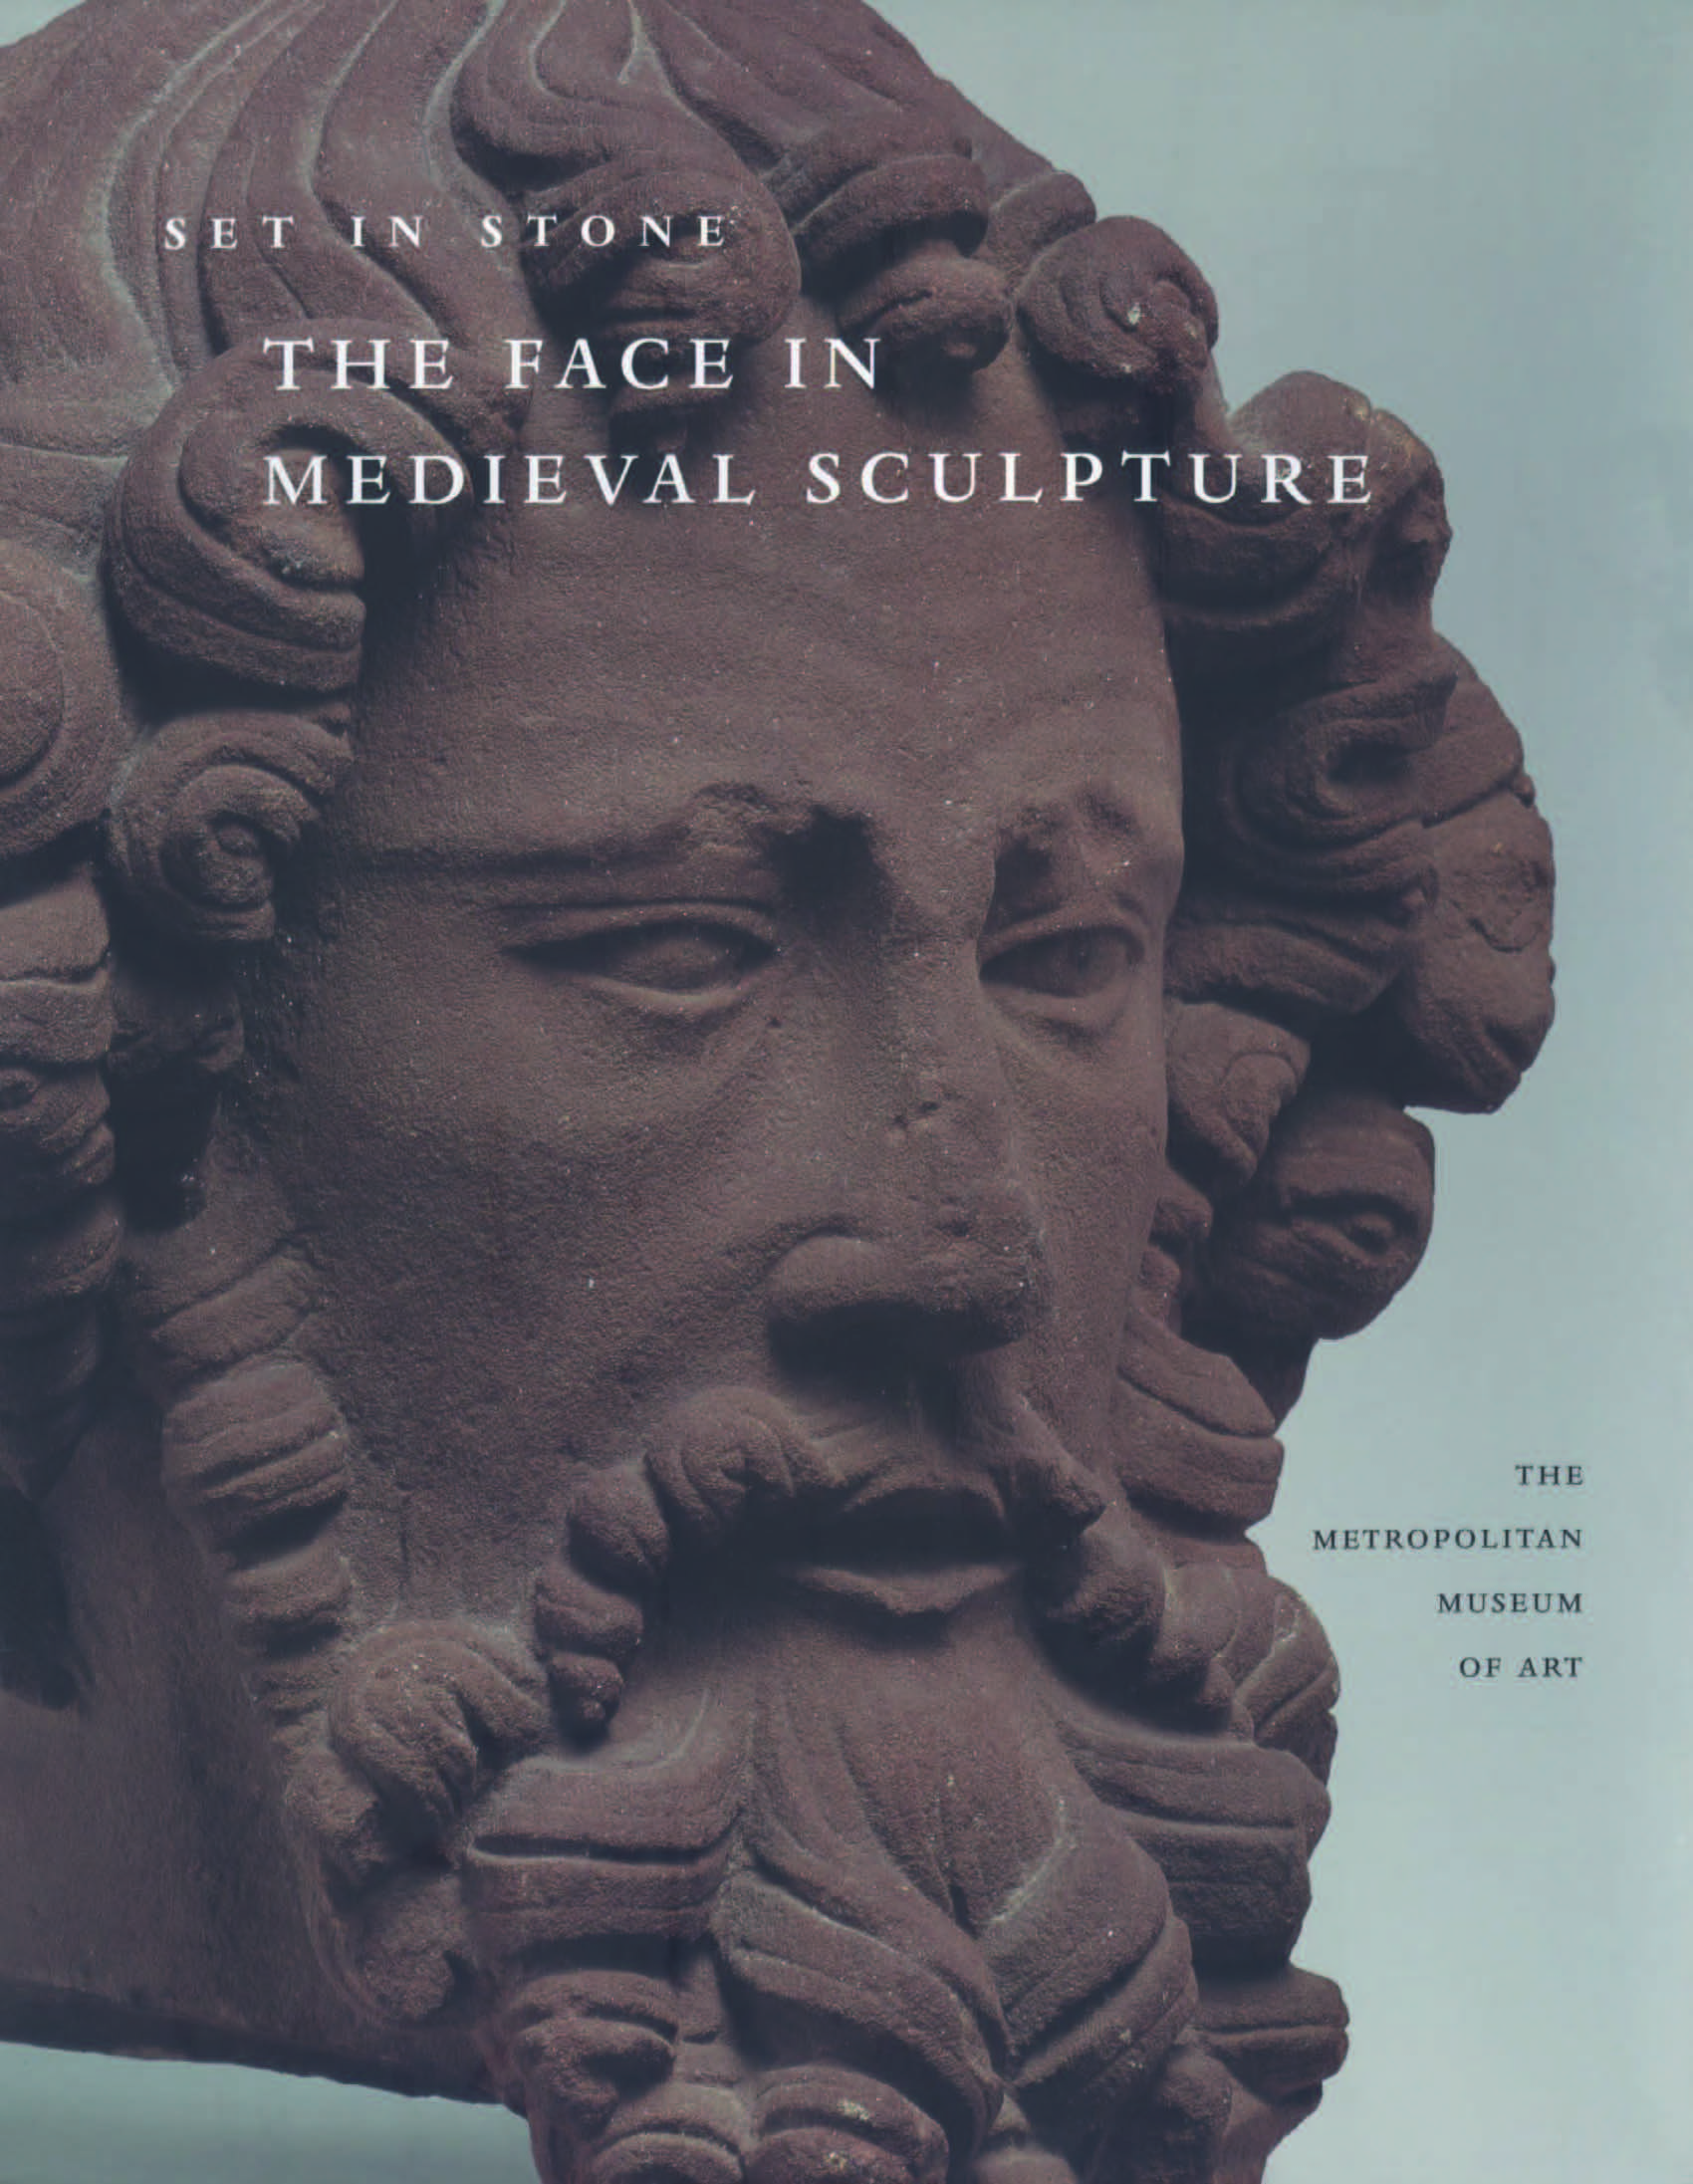 Set in Stone: The Face in Medieval Sculpture